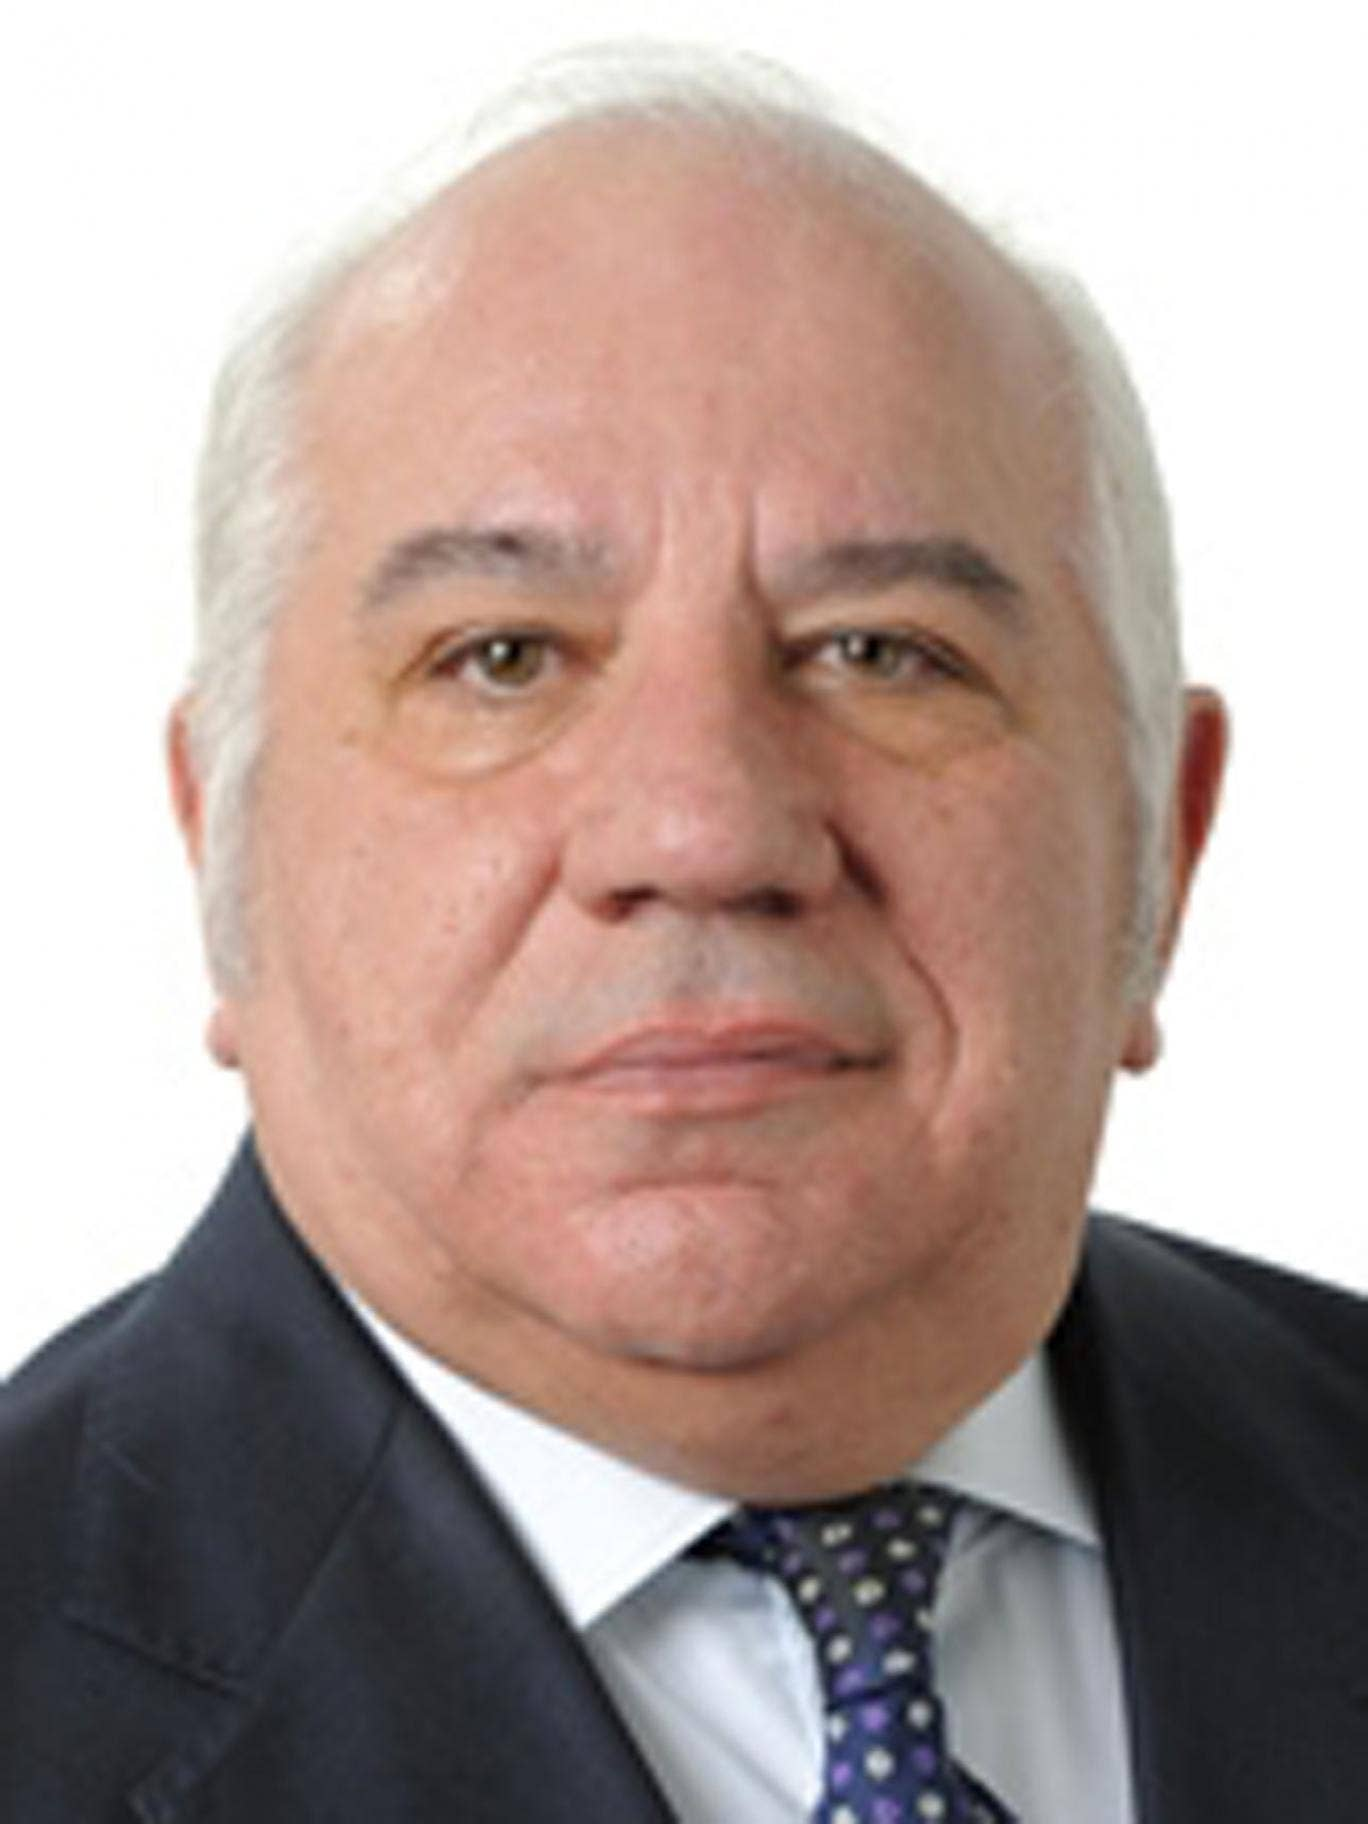 Romanian MEP Dumitru Zamfirescu, who has been accused of only voting to 'cash in' after he doesn't say 'no' to last 541 motions